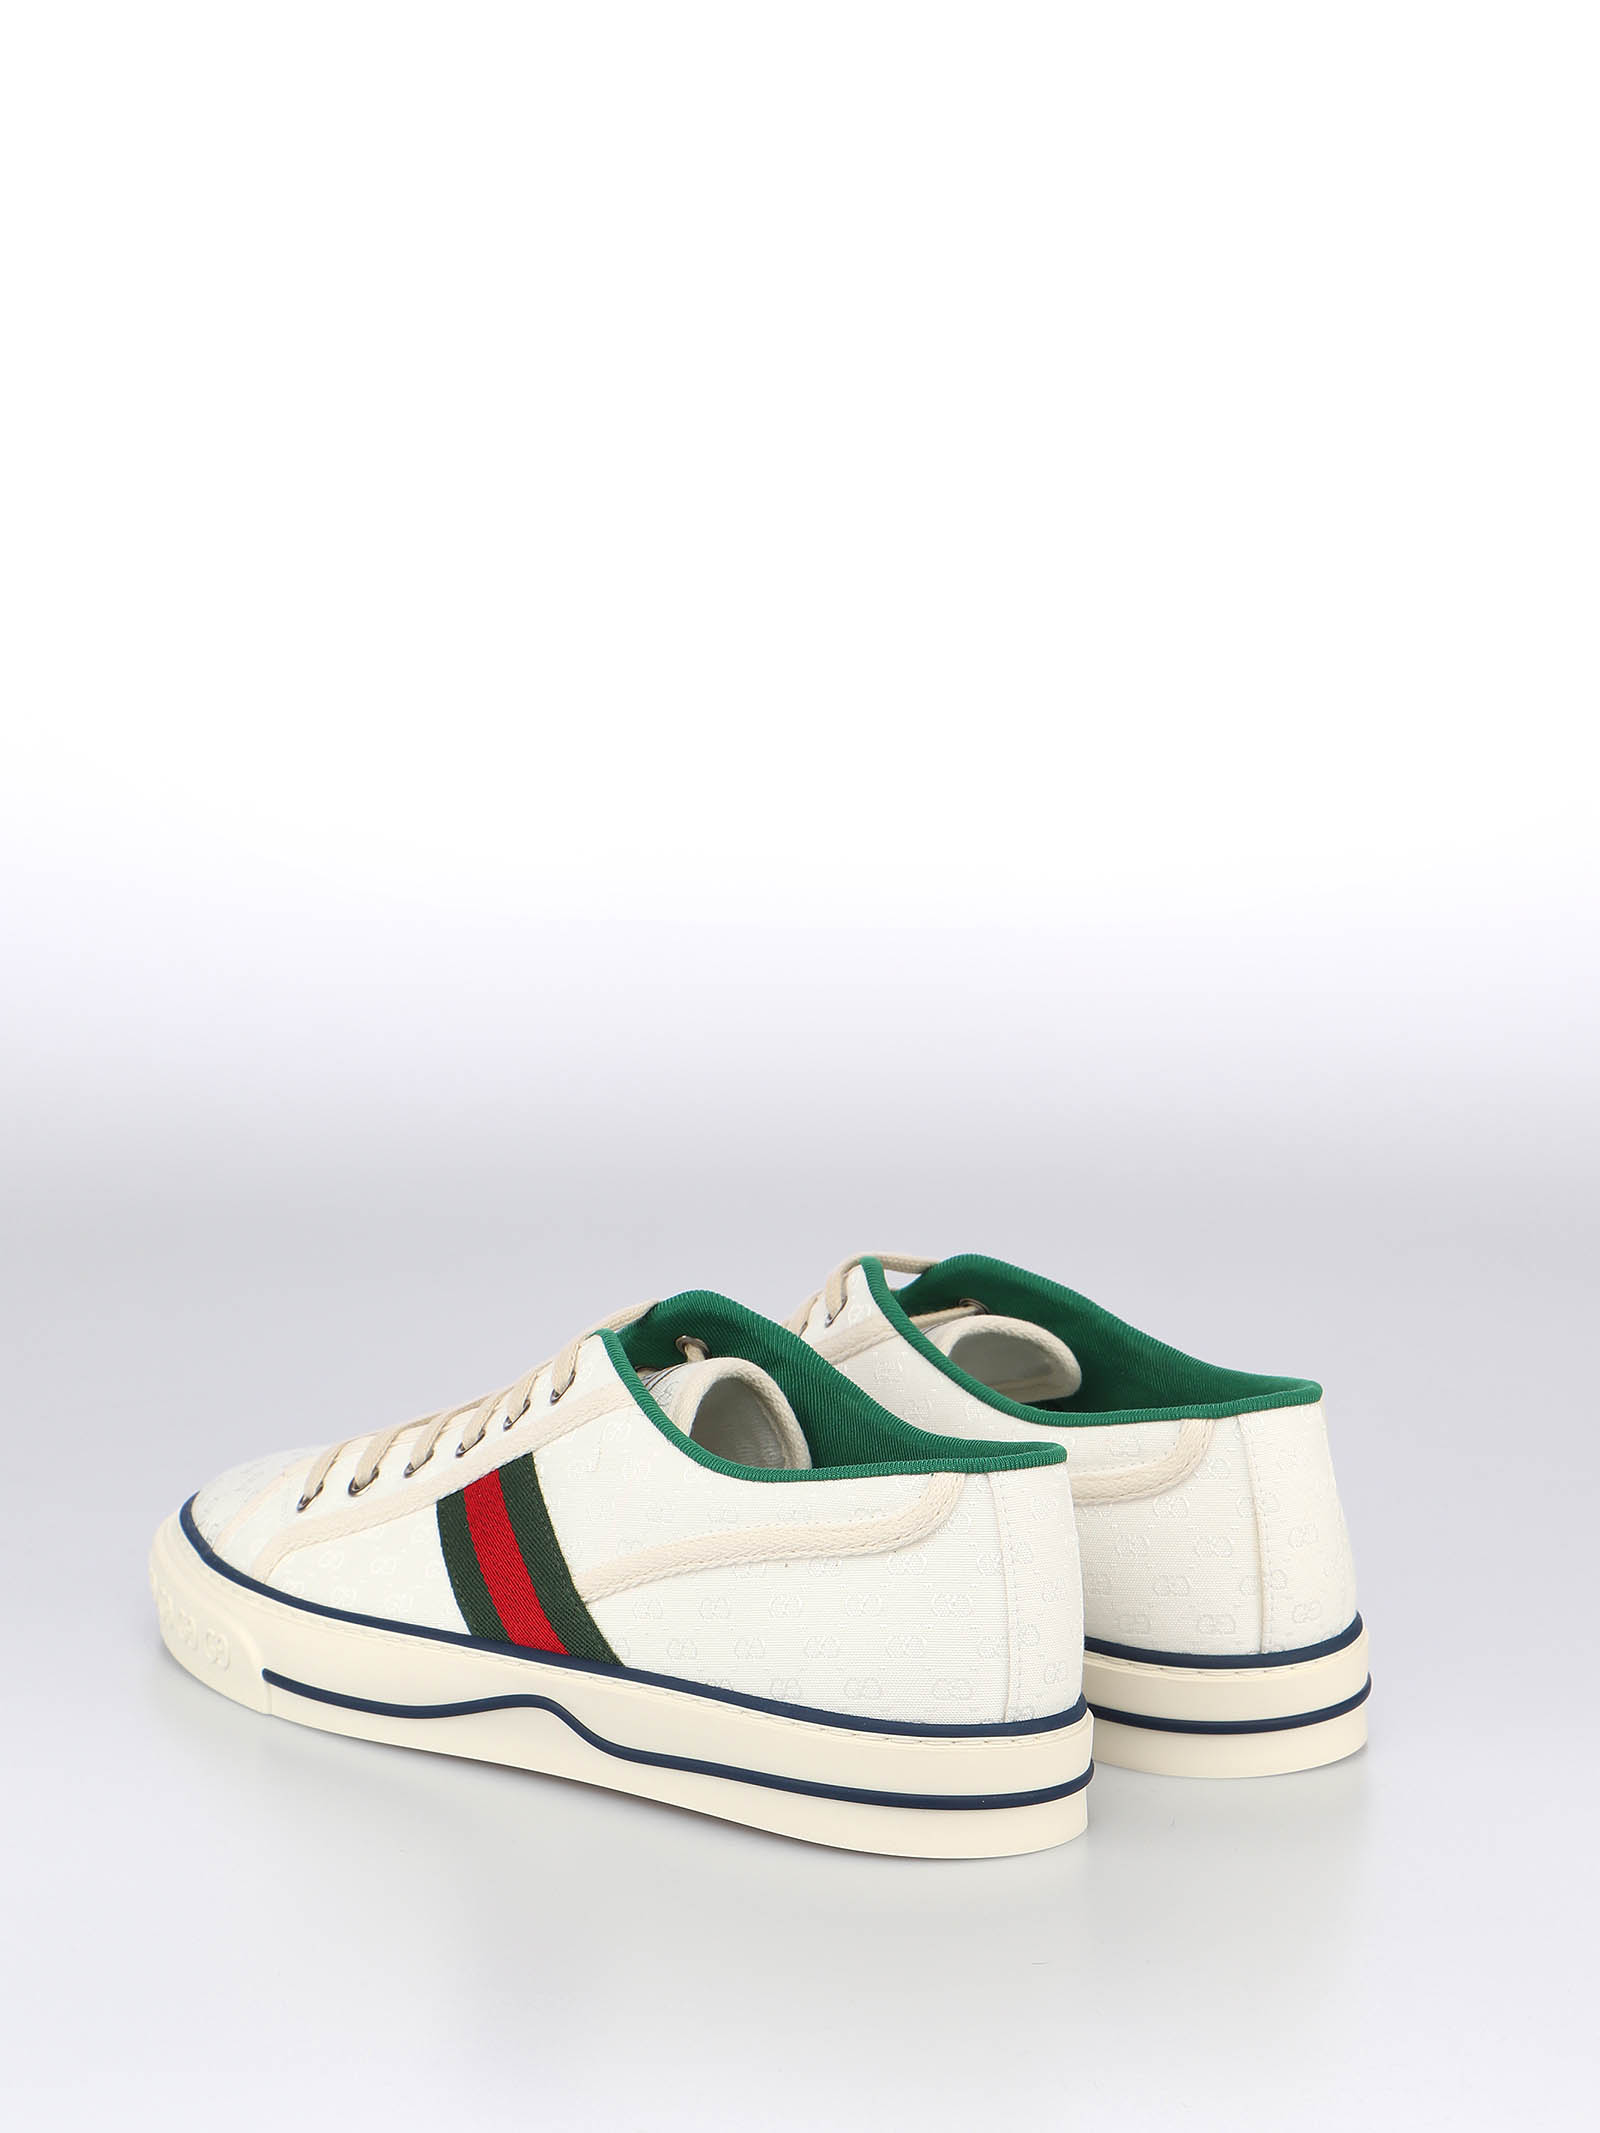 Picture of Gucci | Gucci Tennis 1977 Sneaker